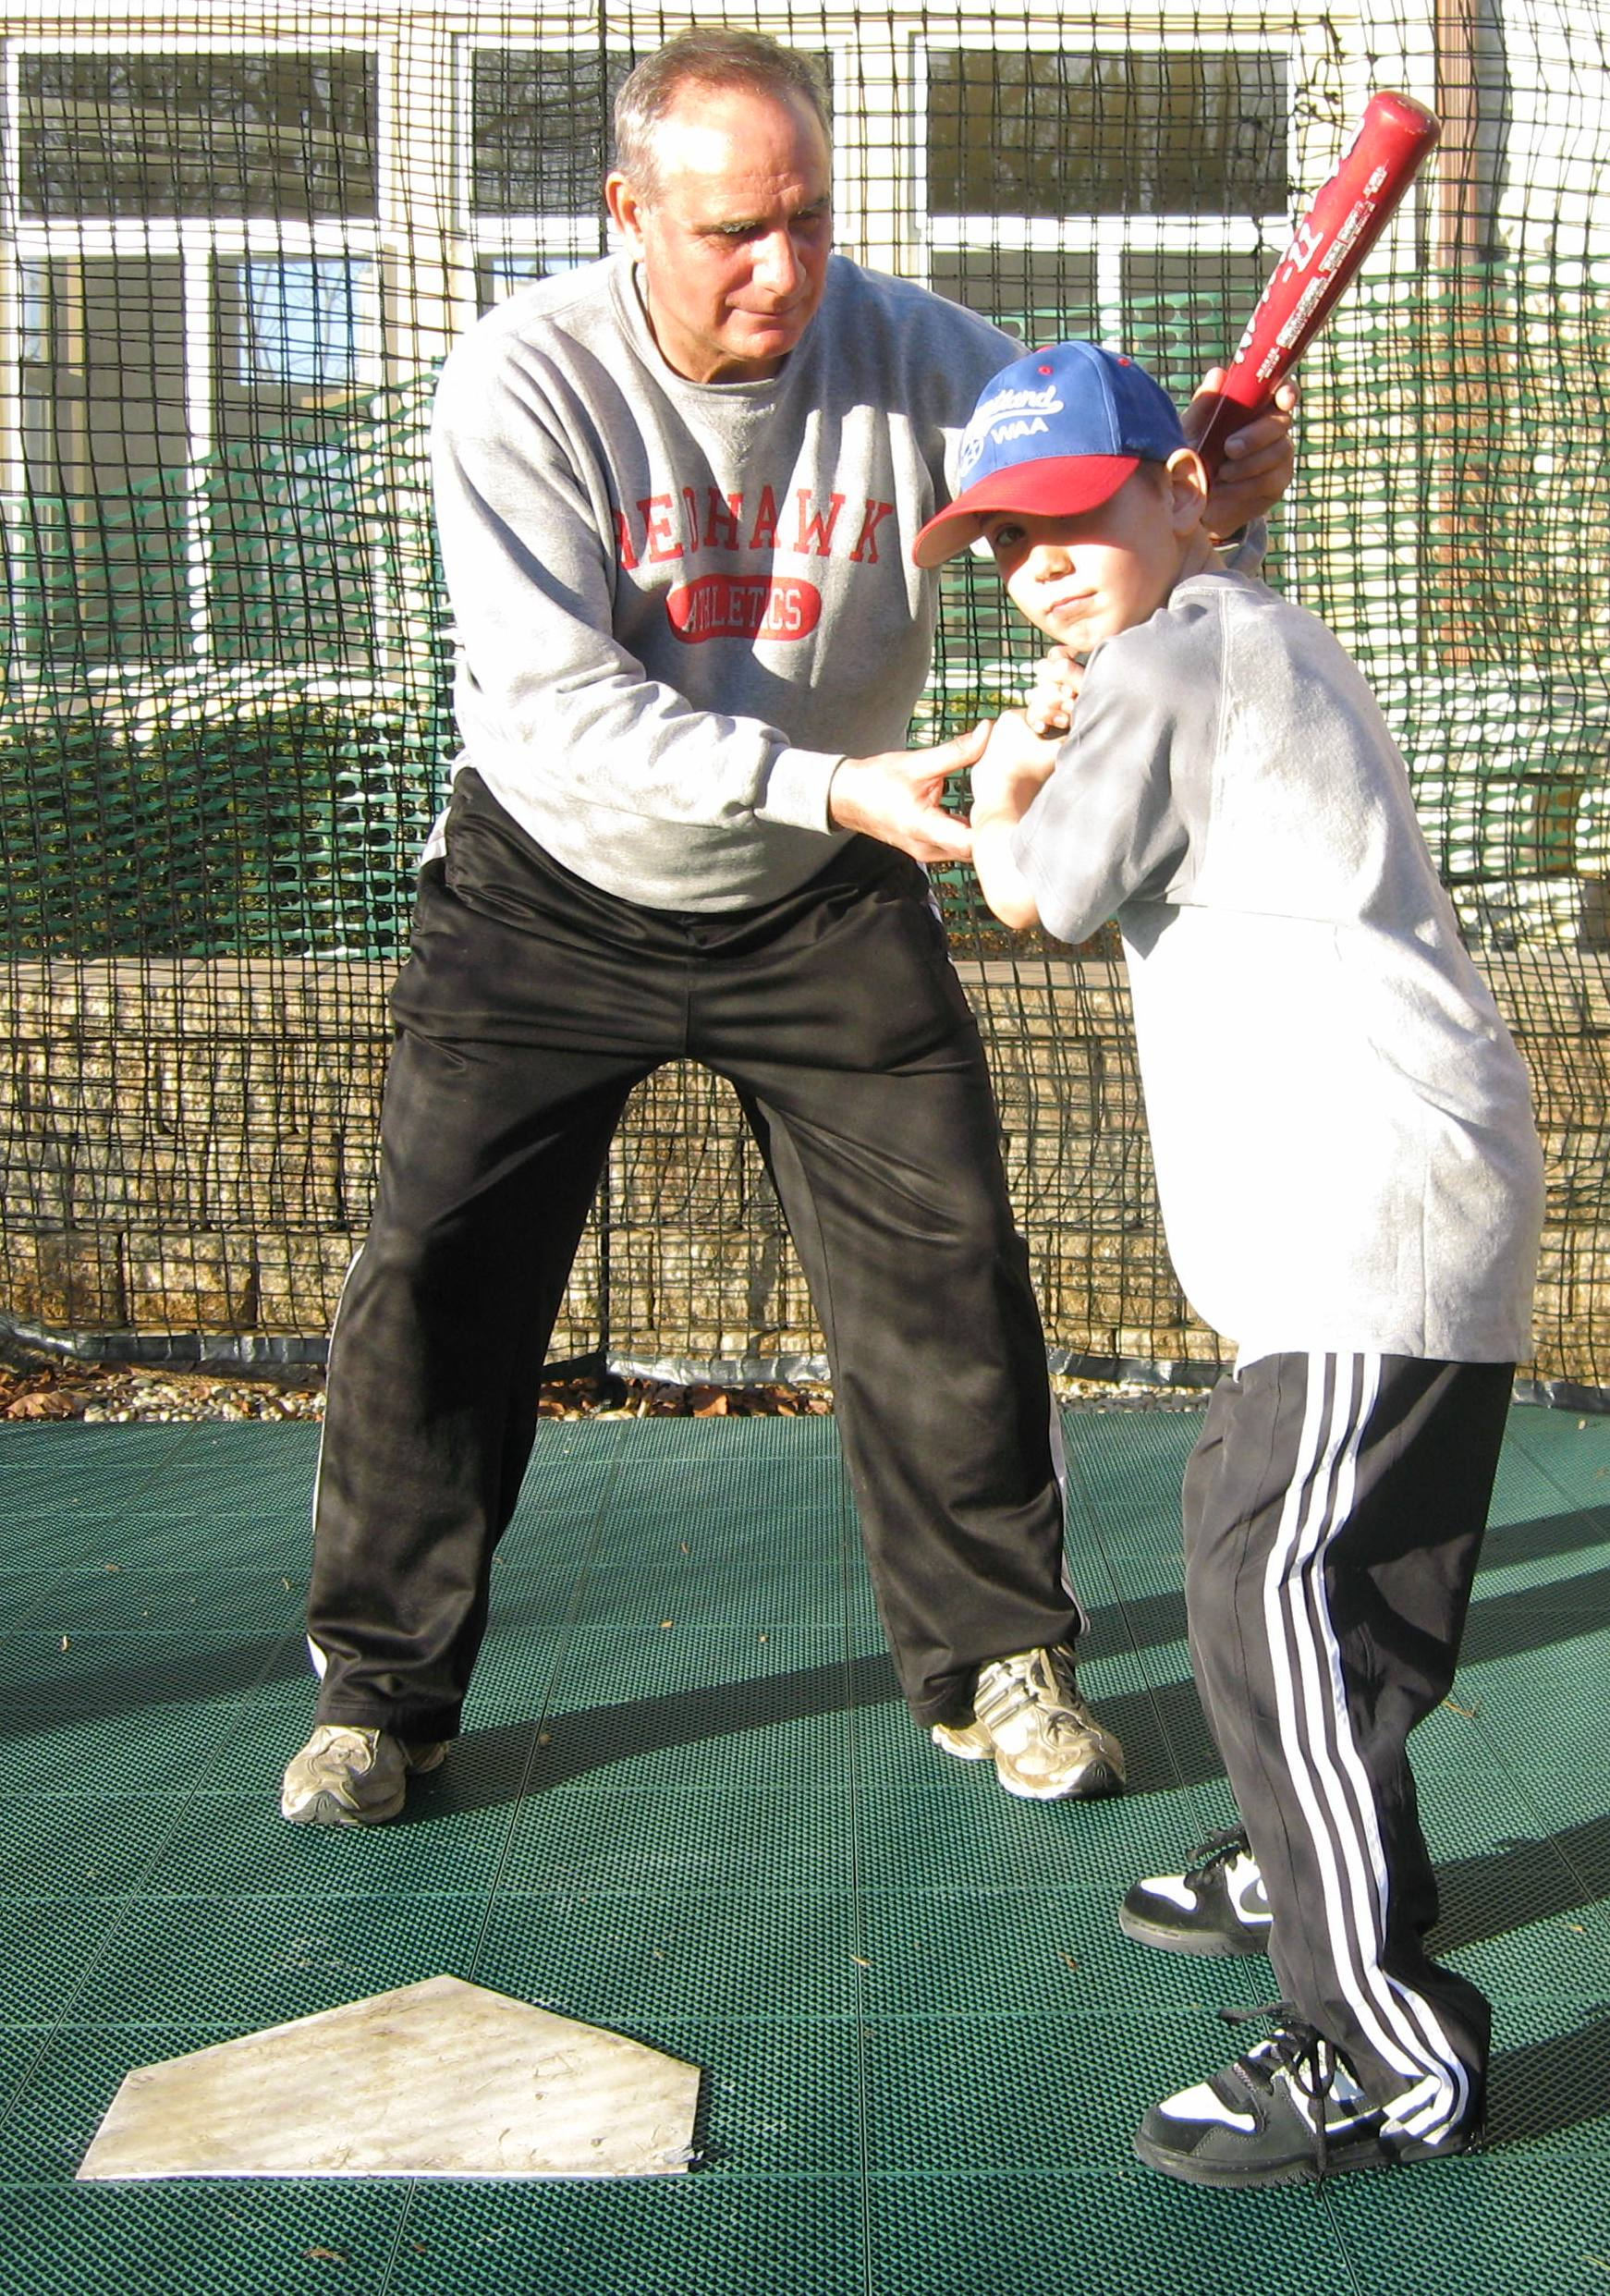 Baseball Coaching Tips For Results